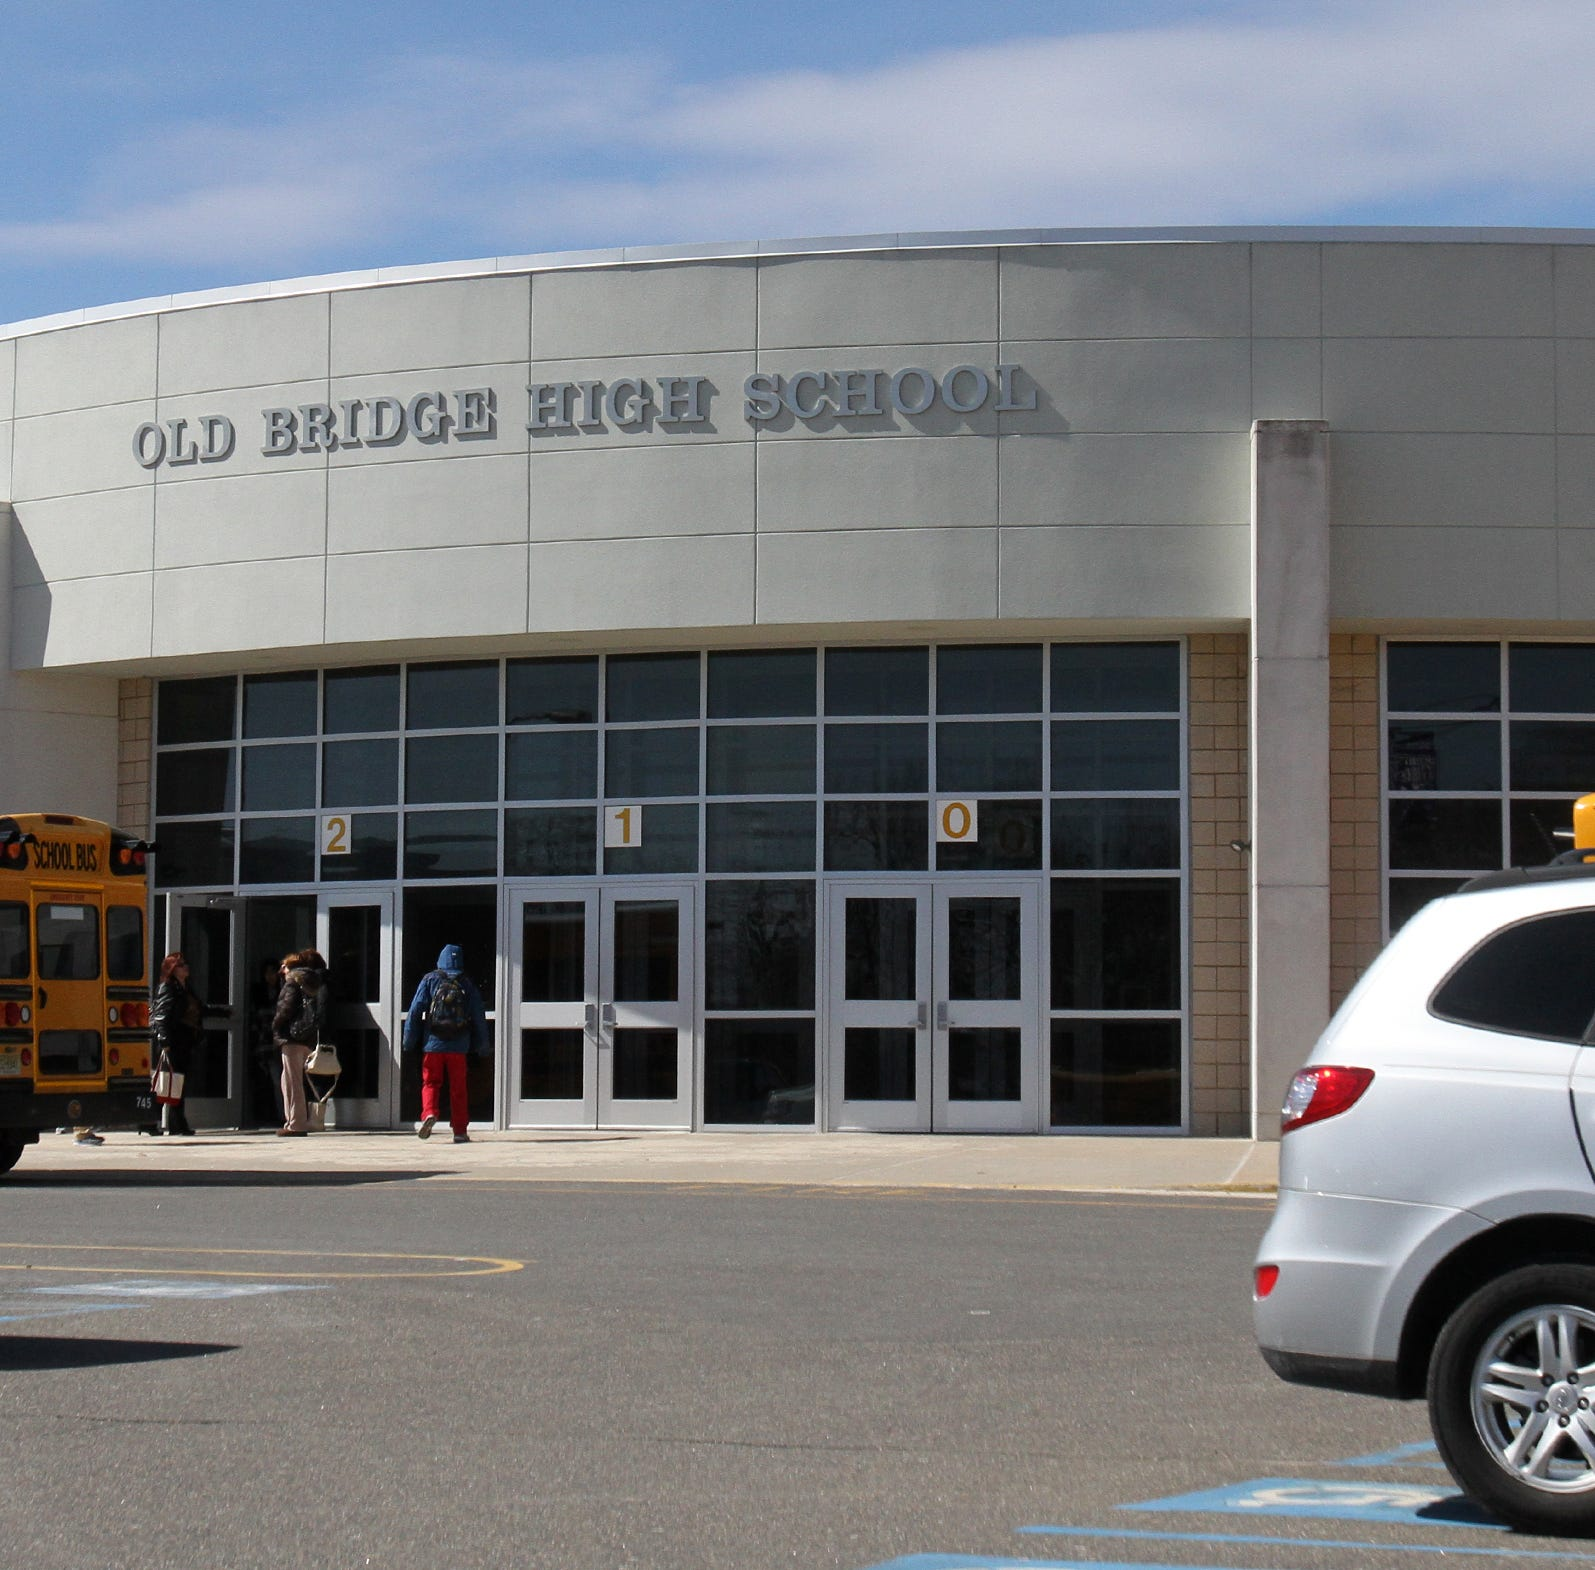 Old Bridge schools cuts 85 positions, raises taxes